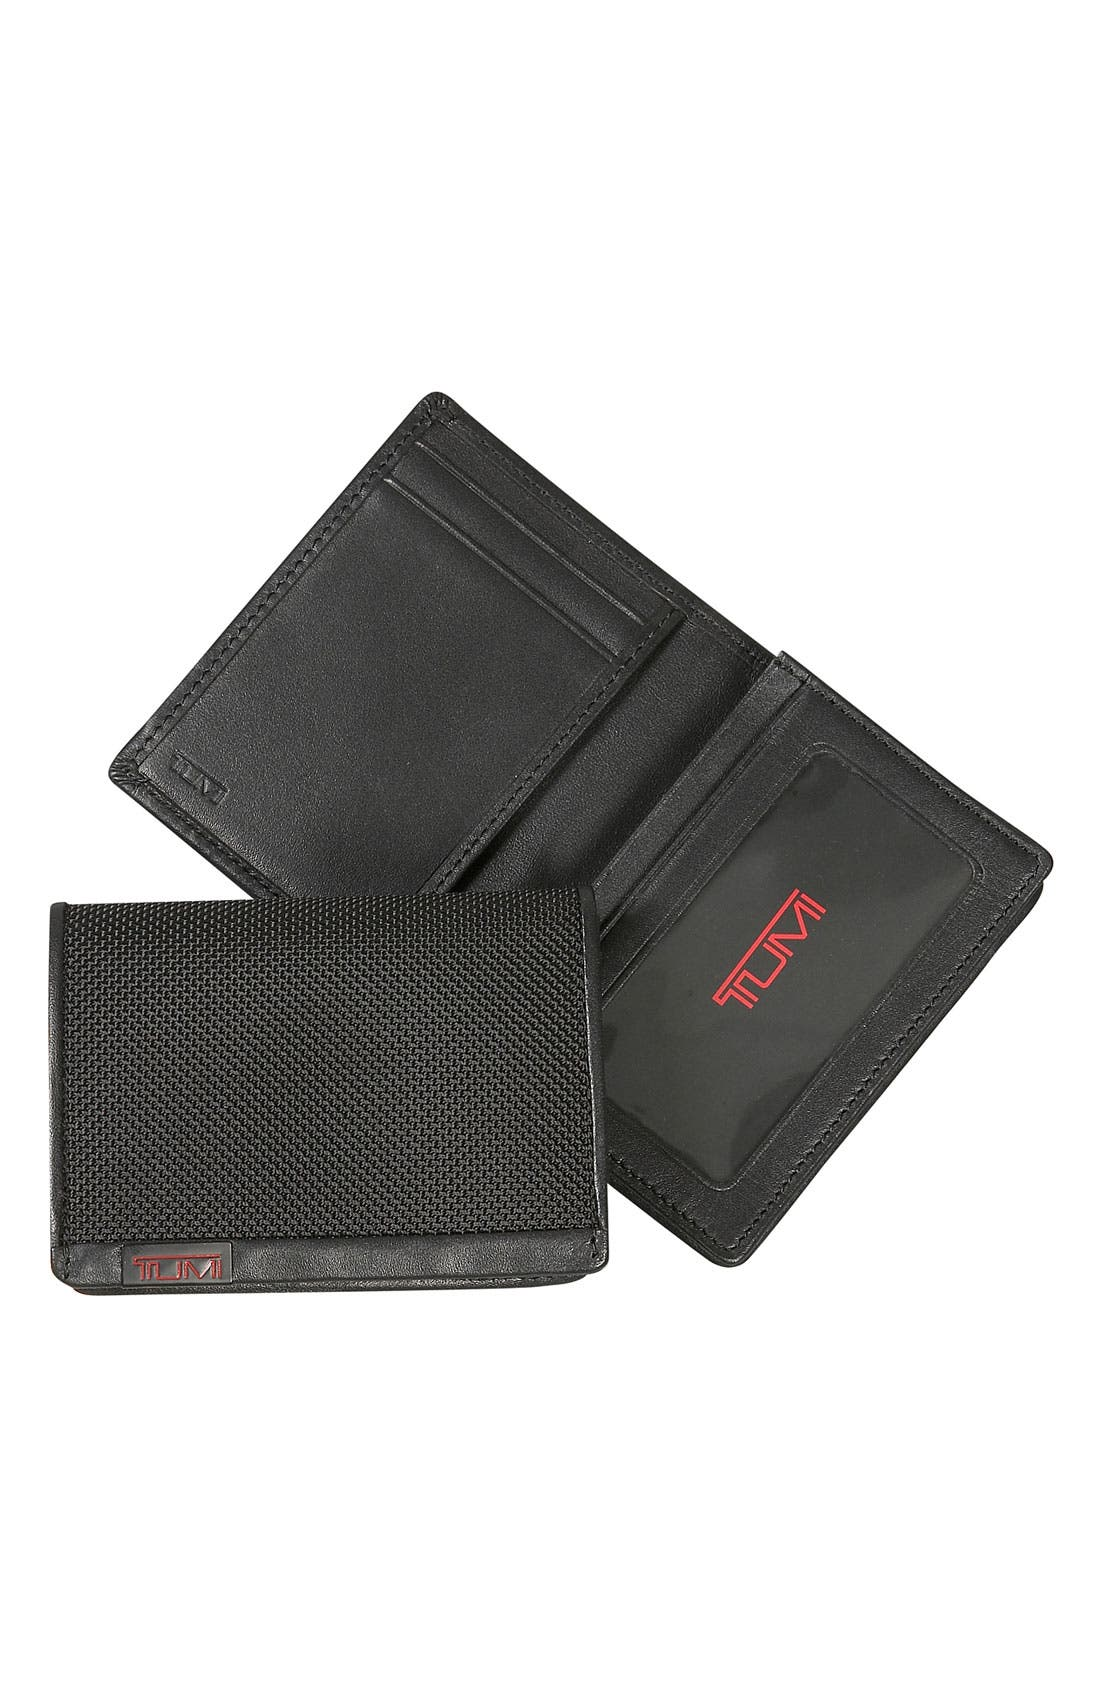 Alternate Image 1 Selected - Tumi 'Alpha' ID Lock™ Gusseted Card Case